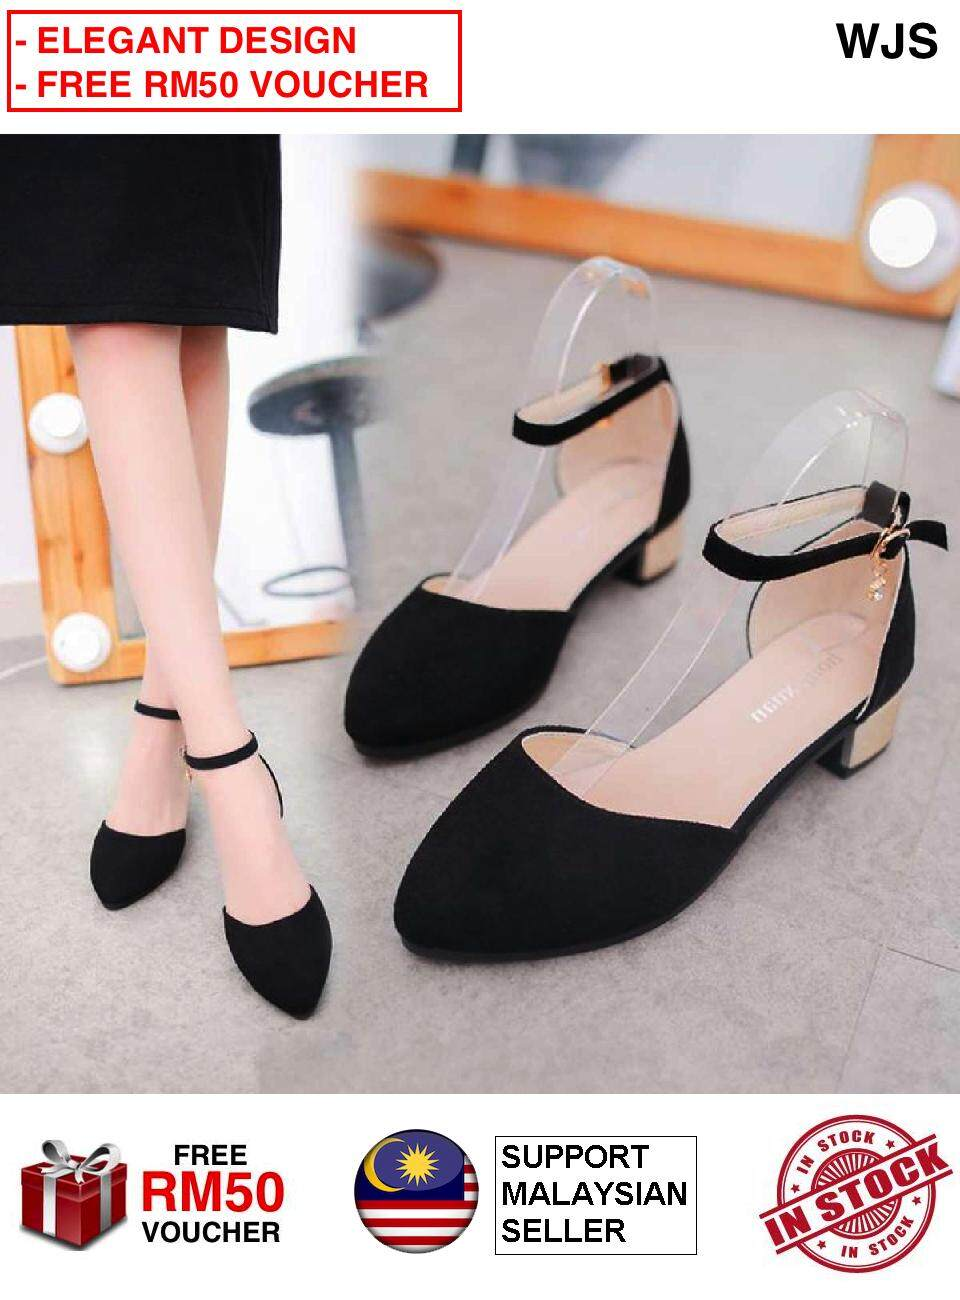 (ELEGANT DESIGN) WJS Exquisite Latest Korean Style Women High Heels Ankle Strap Chunky Heels Women Shoe Wedges [FREE RM 50 VOUCHER]